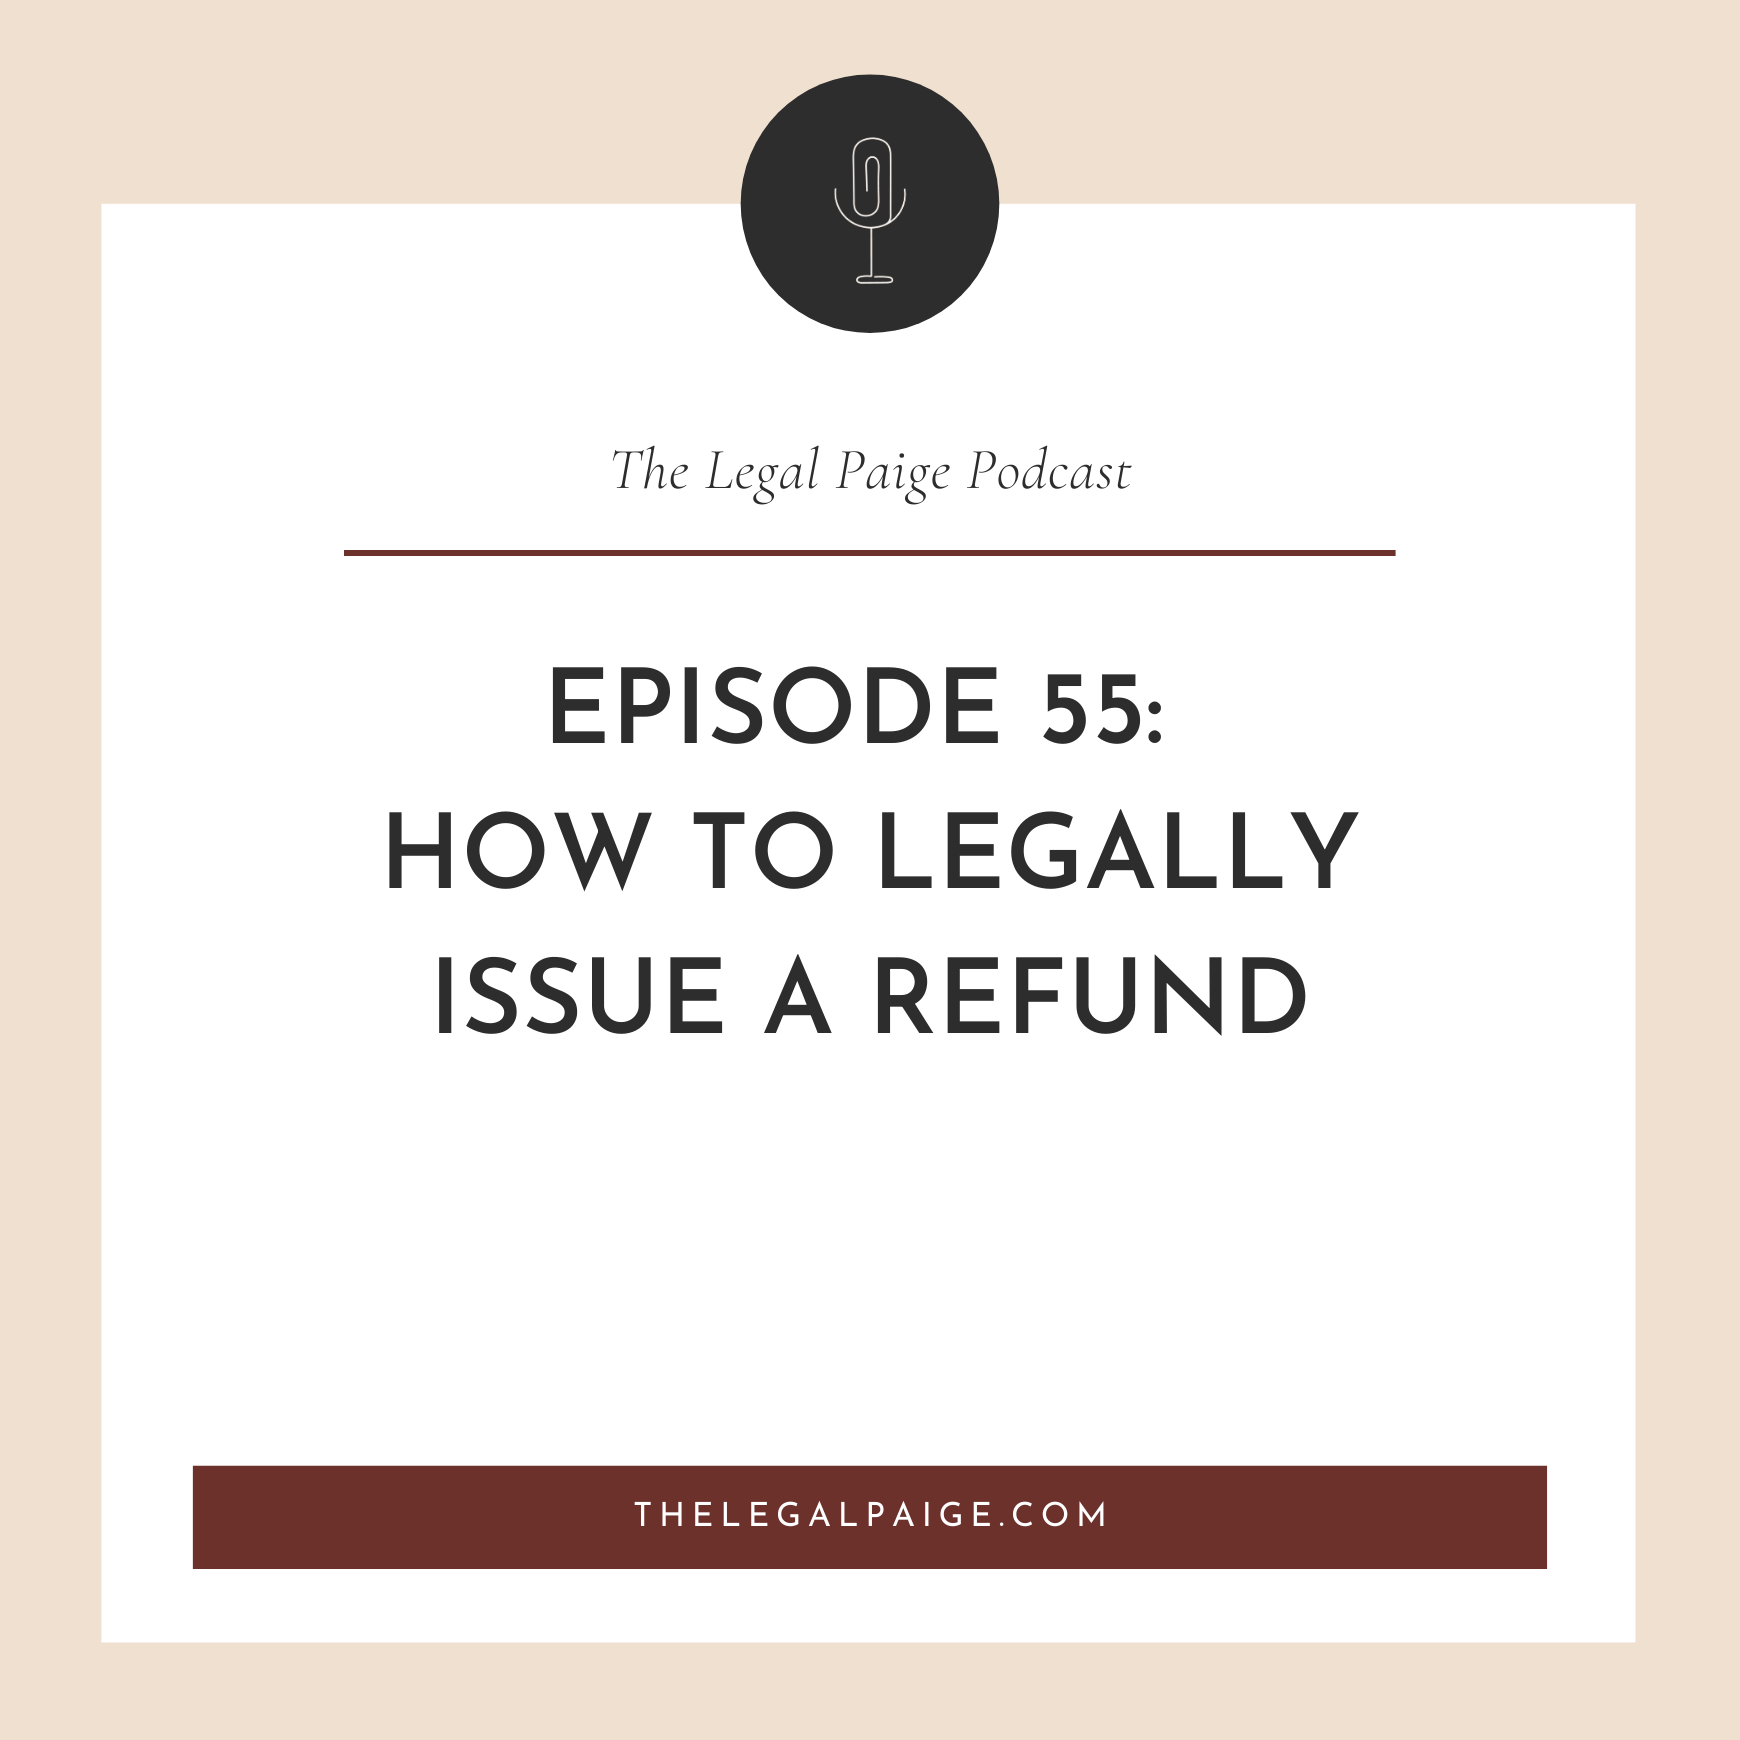 Ep 55: How To Legally Issue A Refund